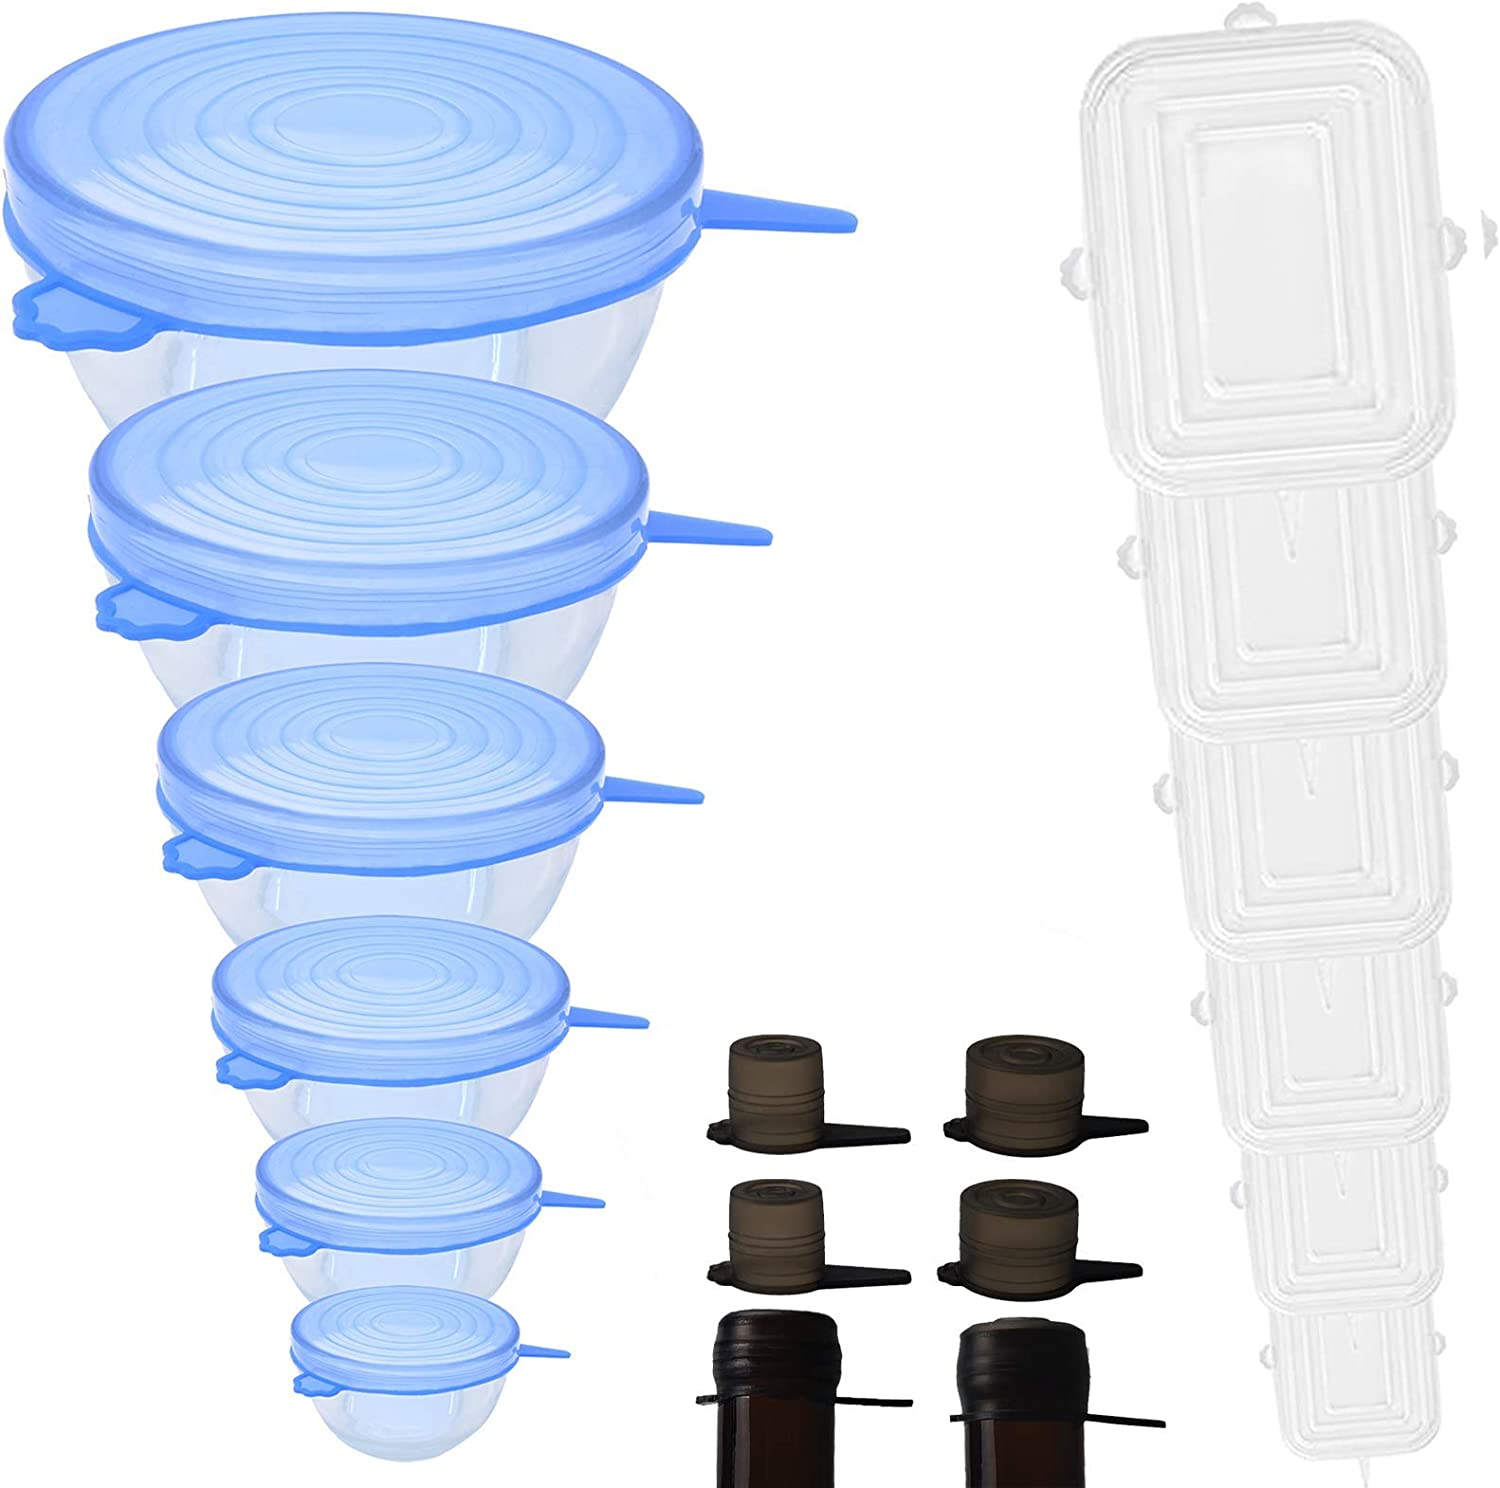 Silicone Stretch Lids 16 pcs Food Grade Silicone Reusable Lids for Bowl Container Fit for Different Sizes & Shapes Keep Fresh Replacement (white+blue)